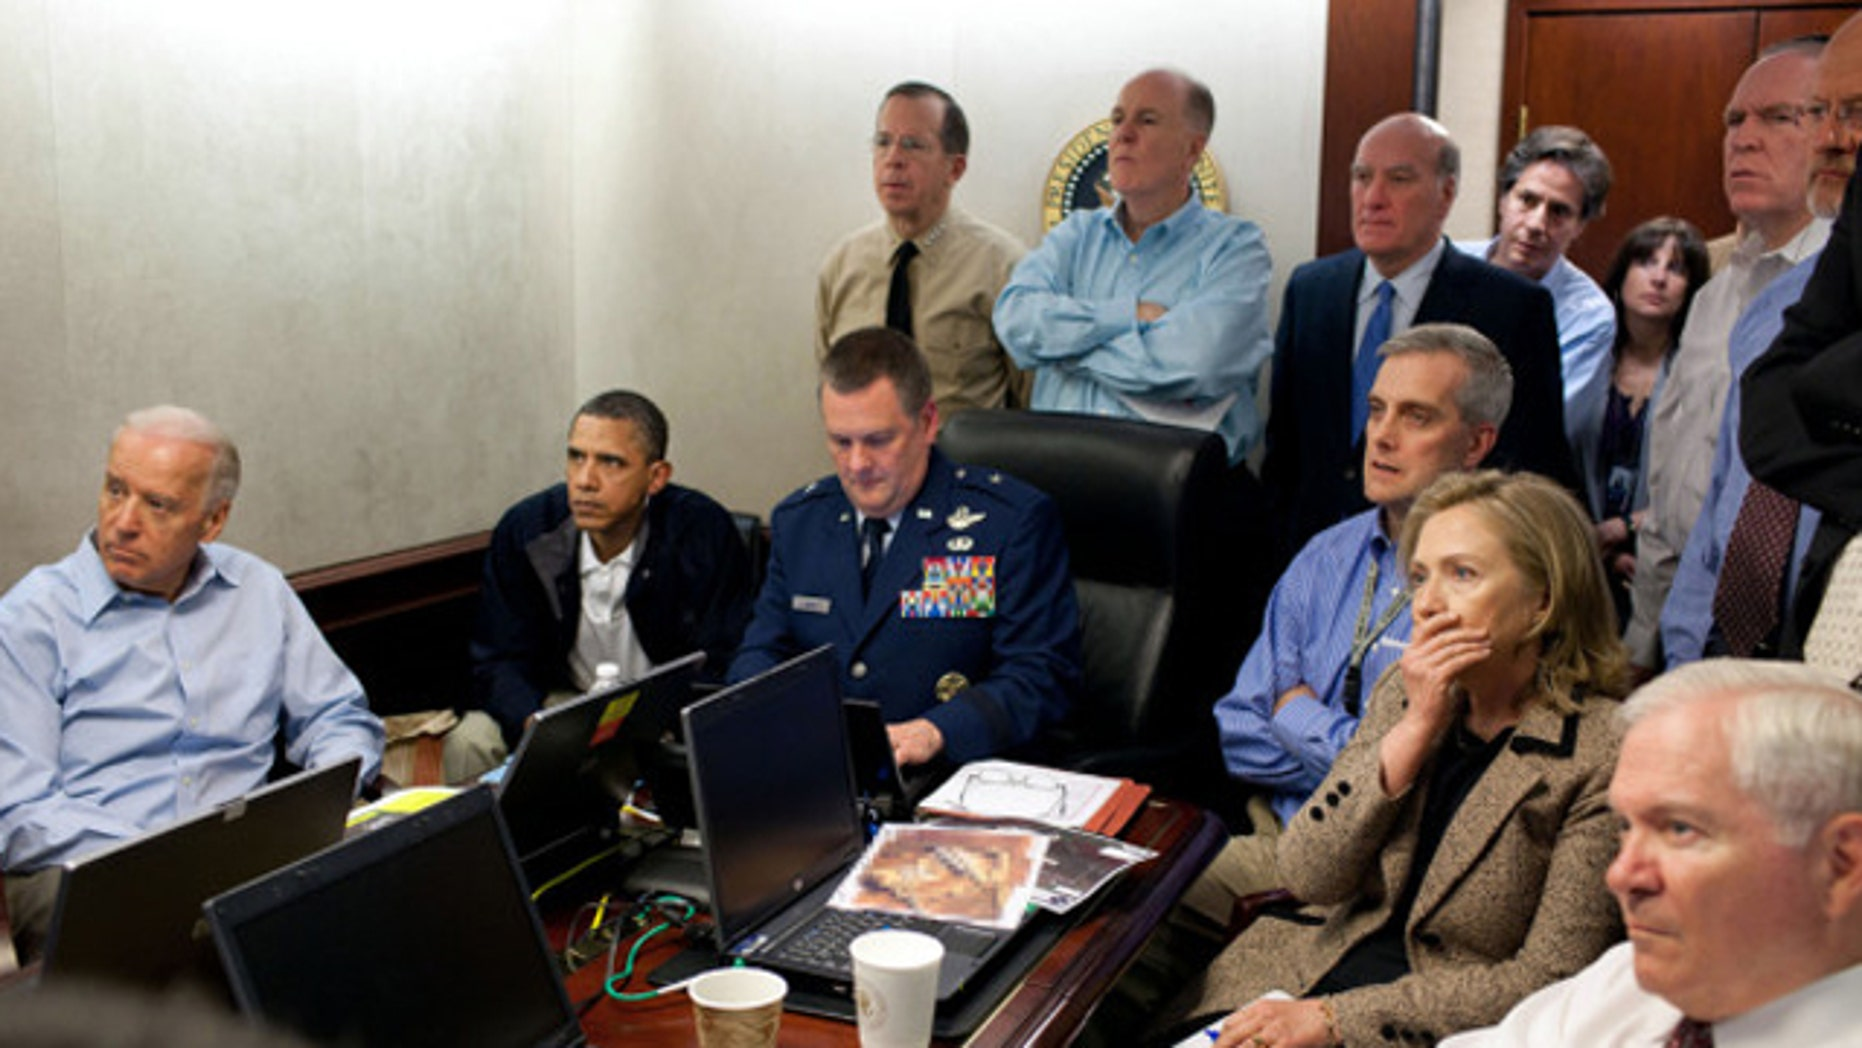 Top-level officials get updated on the status of the mission to kill Usama bin Laden